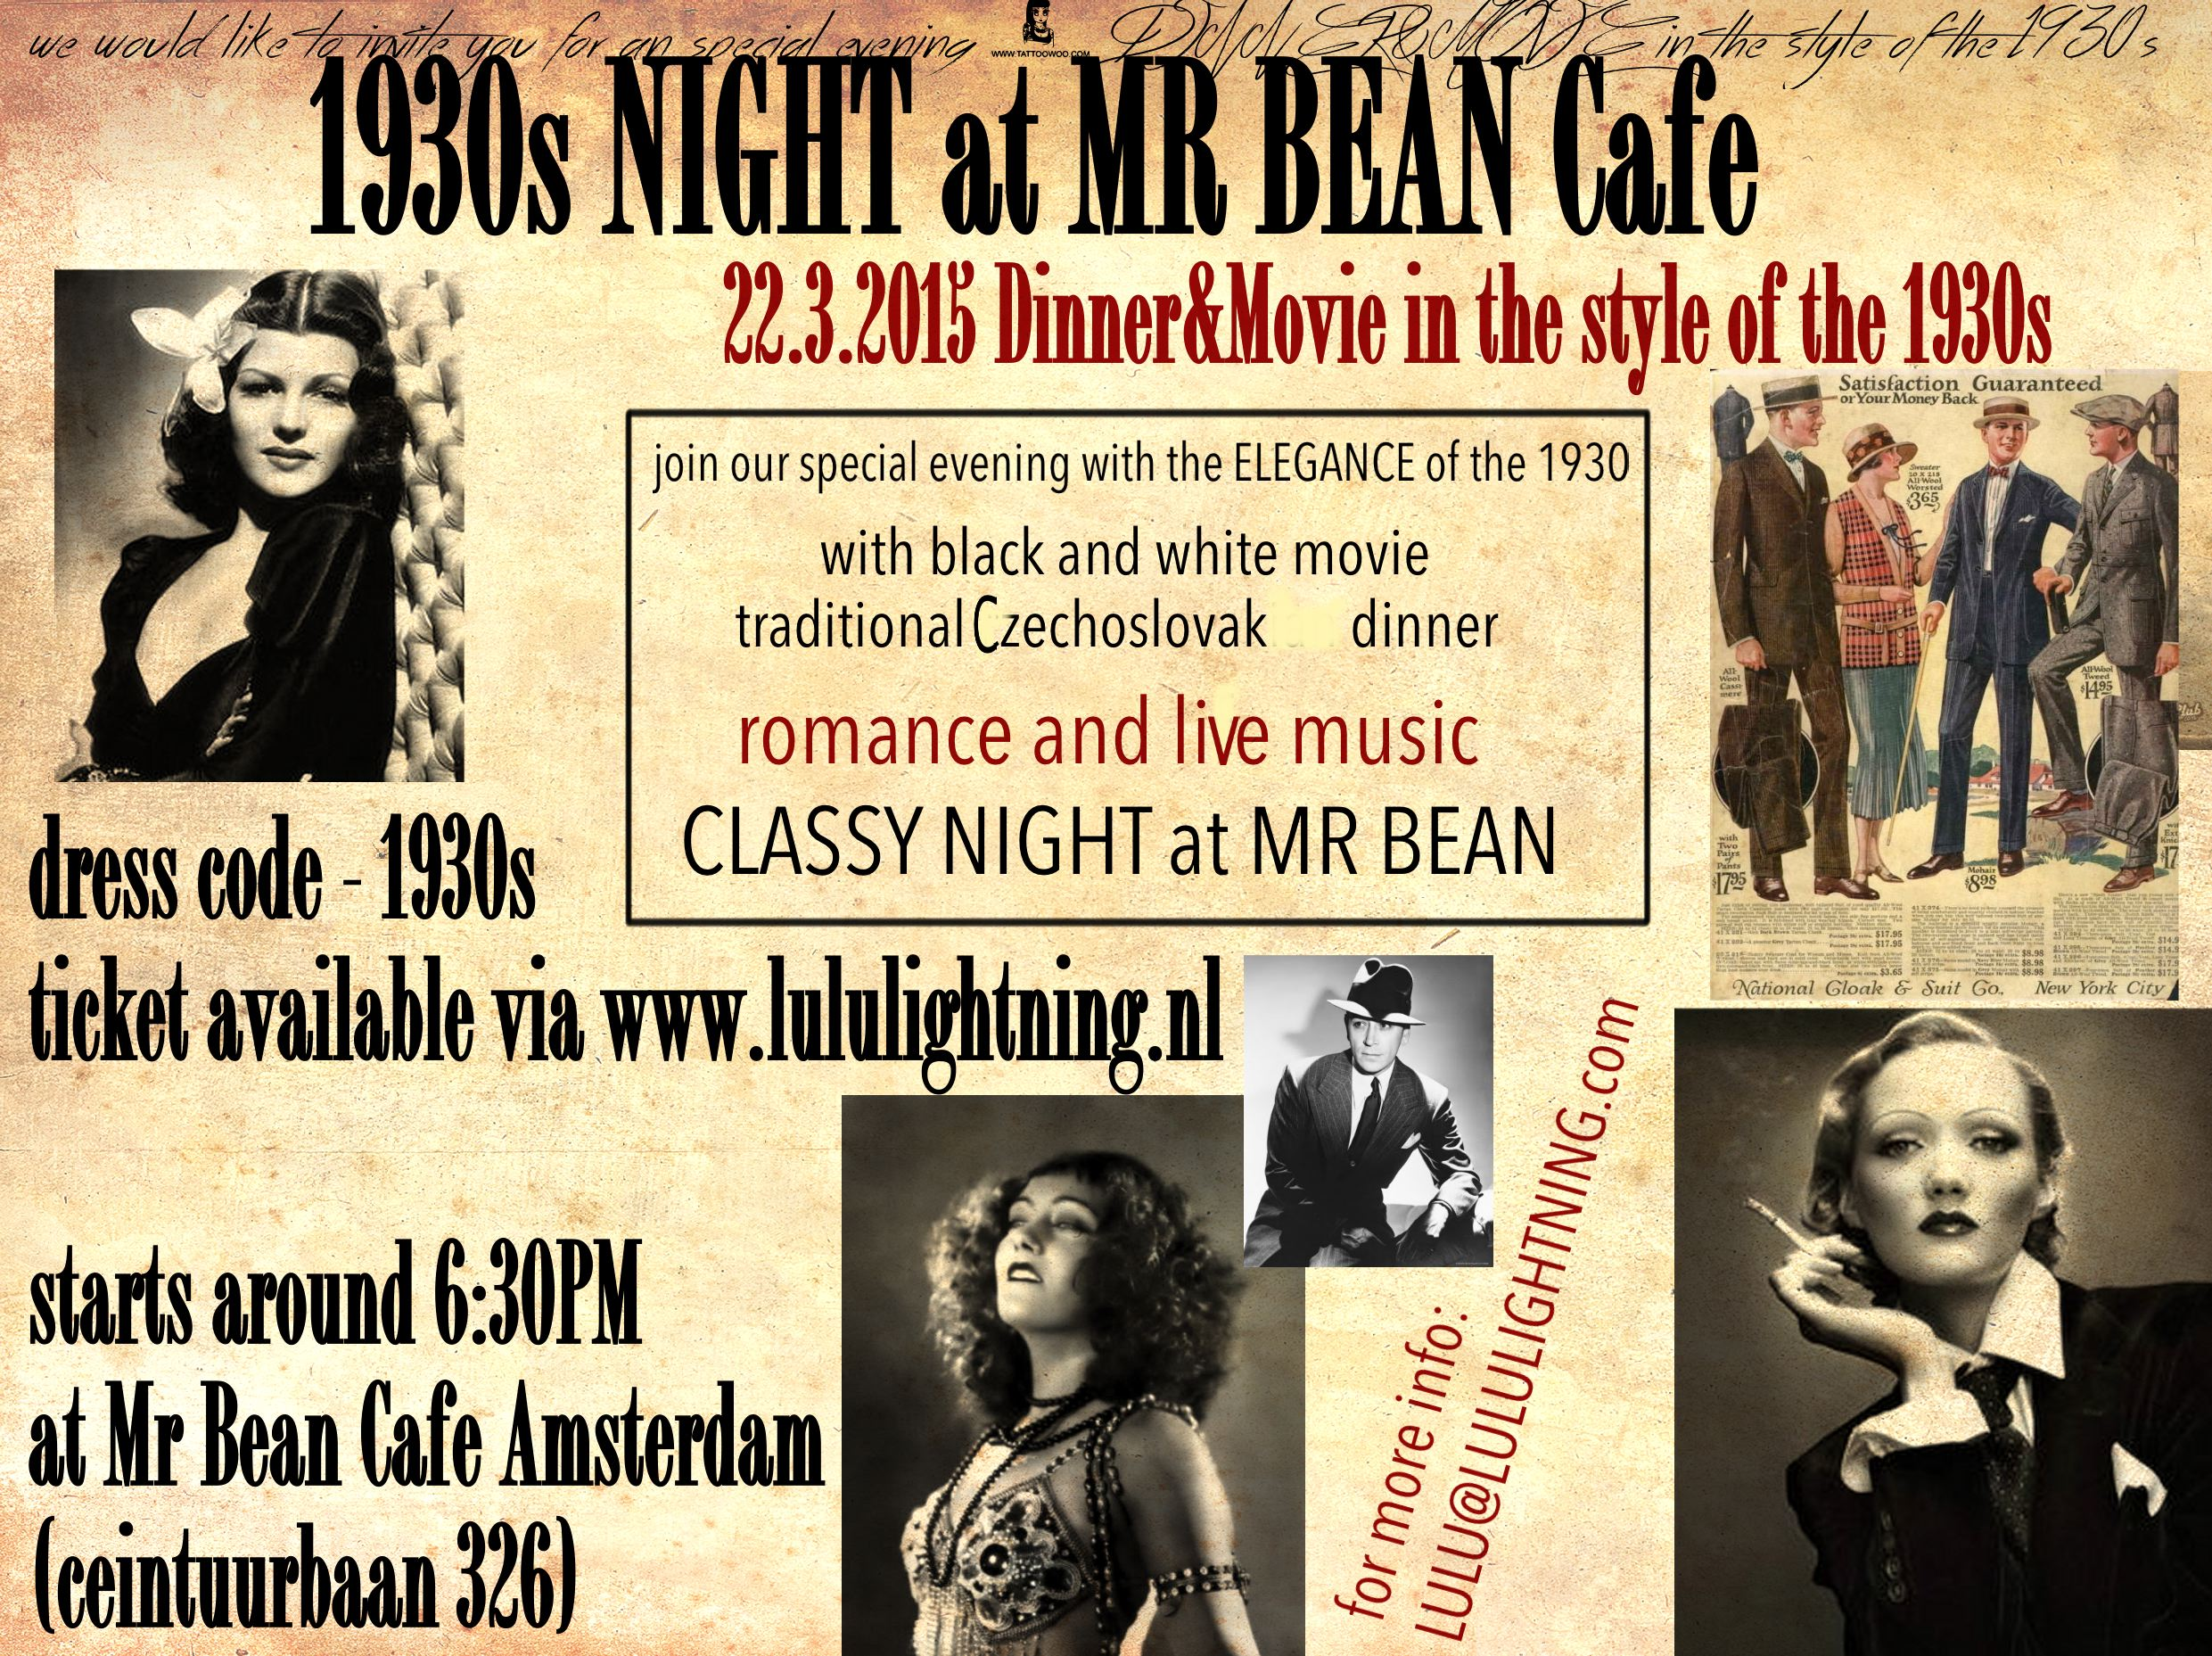 1930 flyers EVENT AT THE MR BEAN CAFE AMSTERDAM